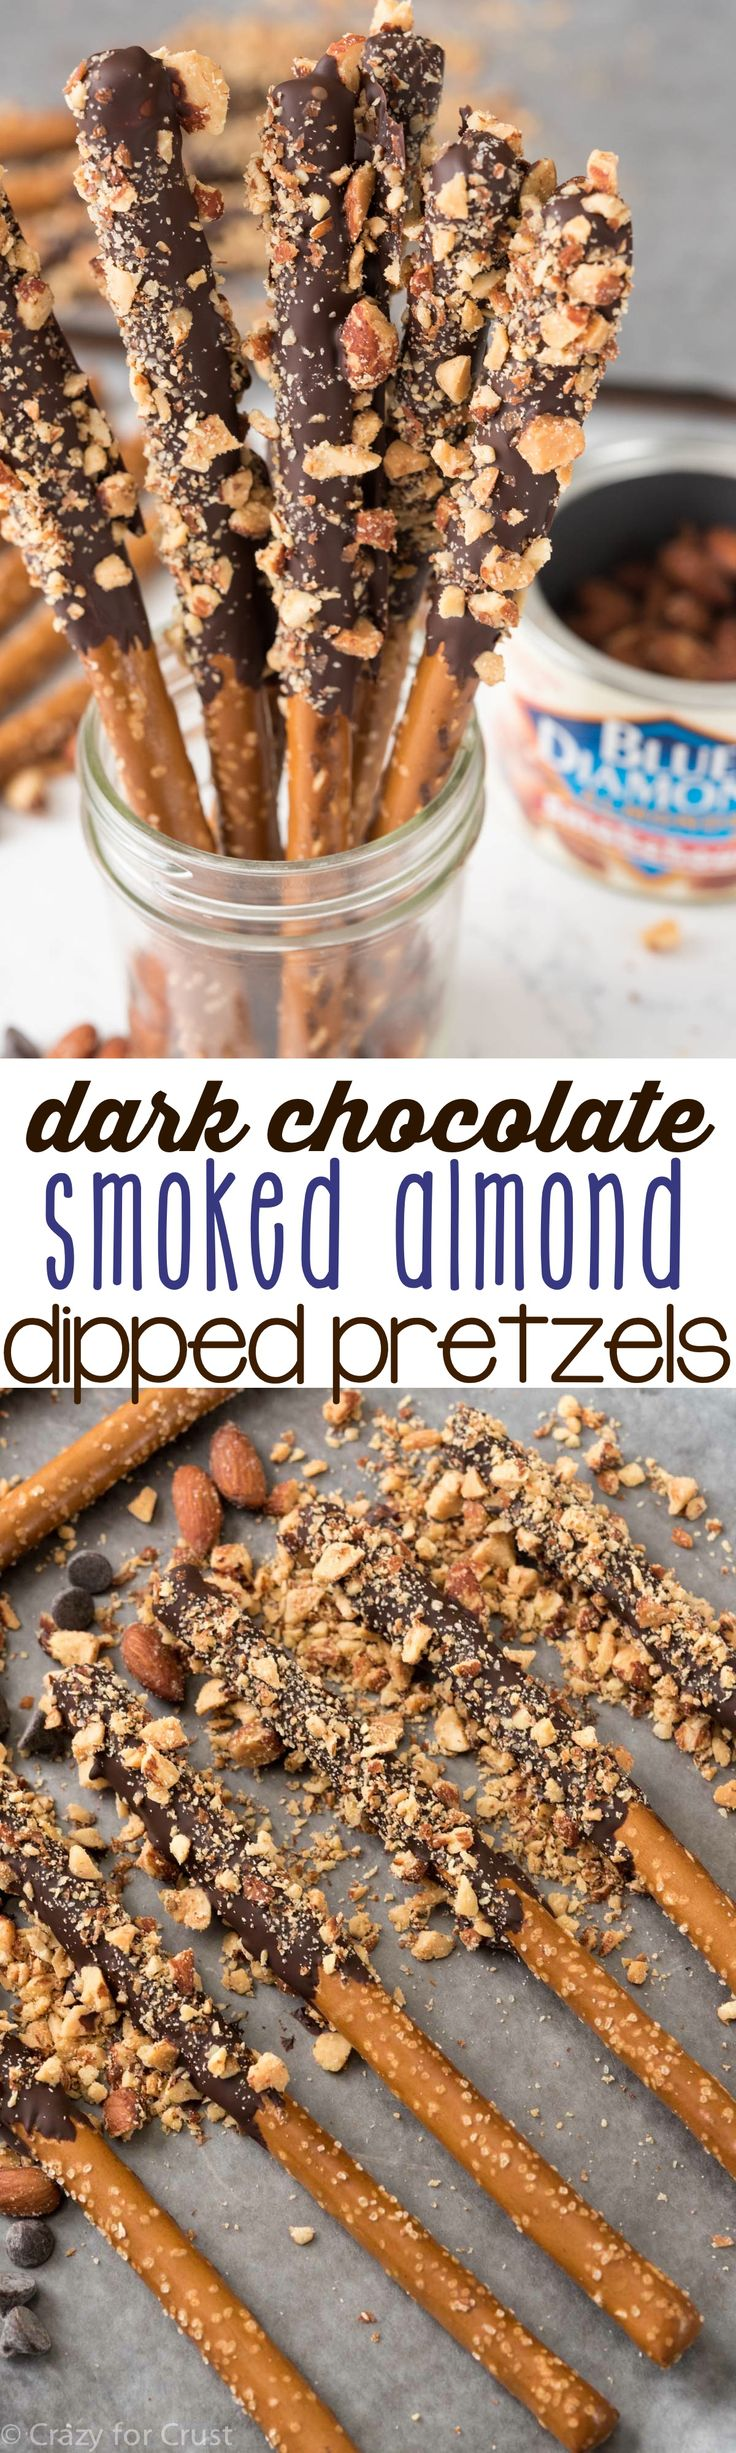 Dark Chocolate Almond Dipped Pretzels - Crazy for Crust